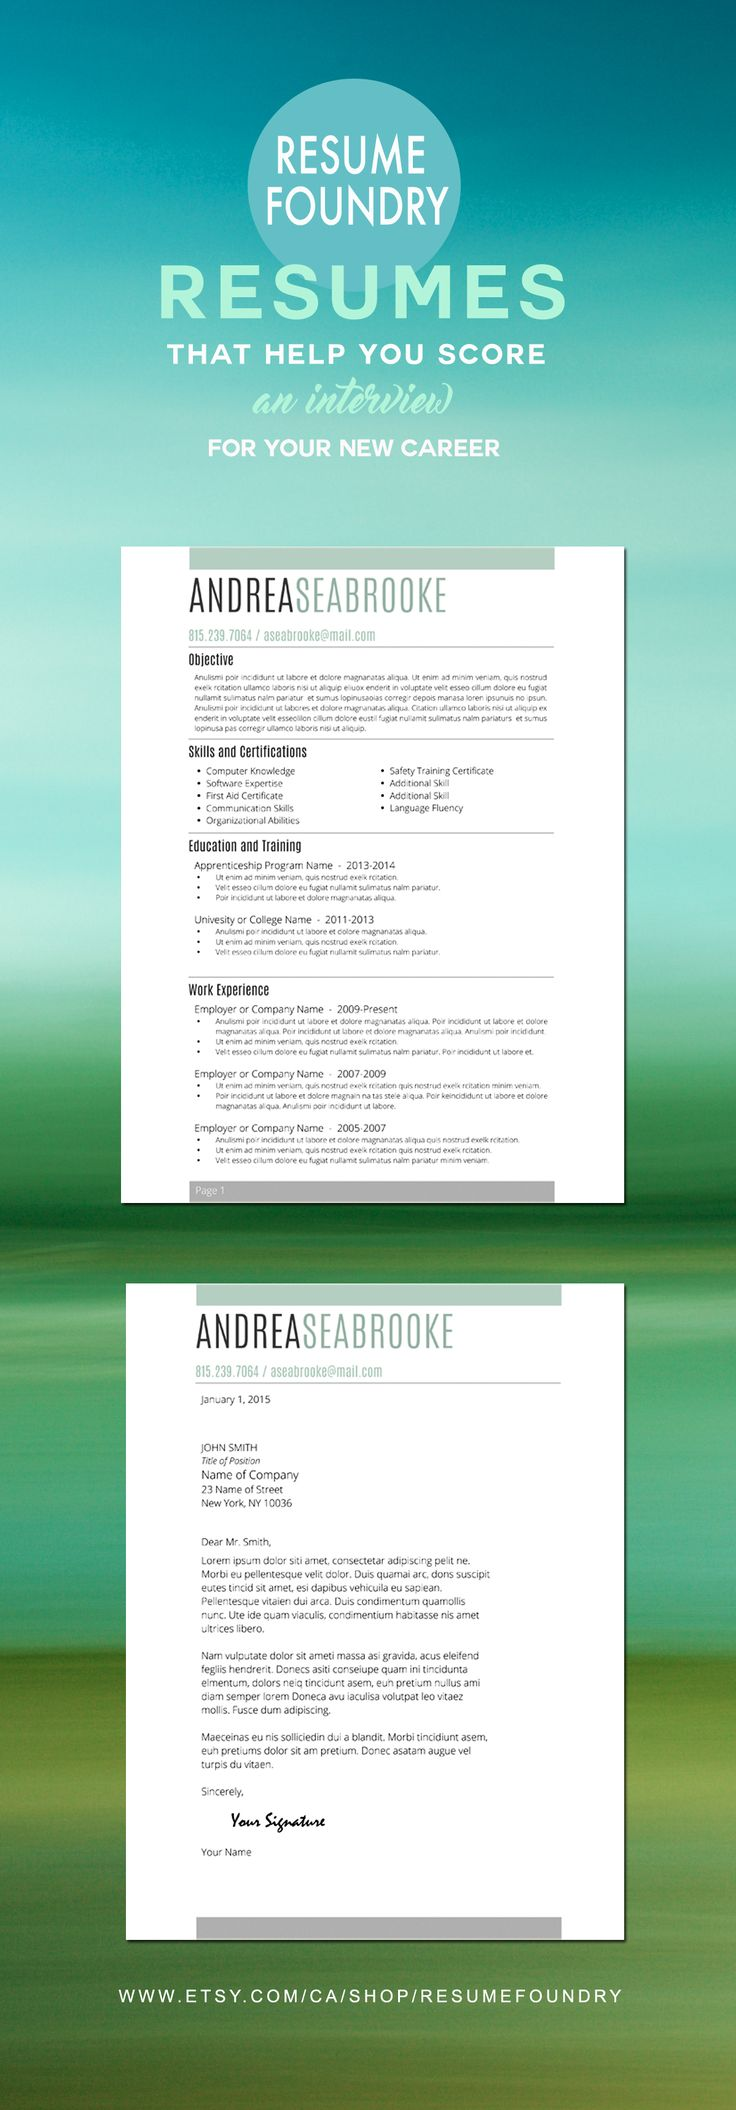 operations supervisor resume%0A Completely transform your resume for     with a professionally designed  resume template